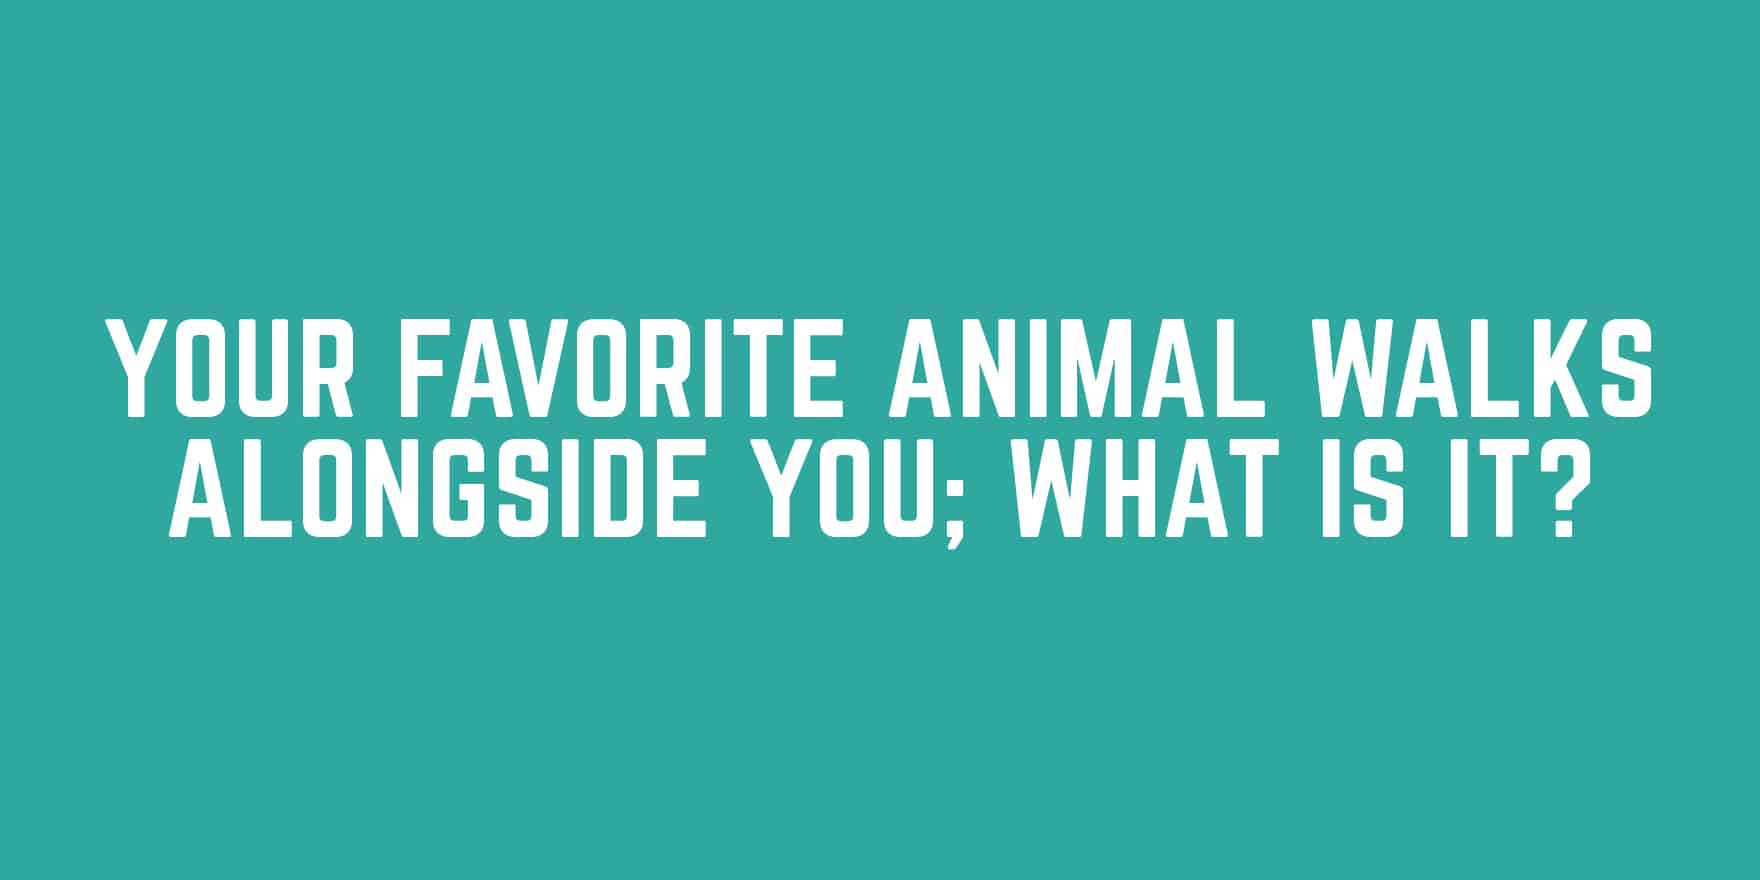 Your favorite animal walks alongside you; what is it?